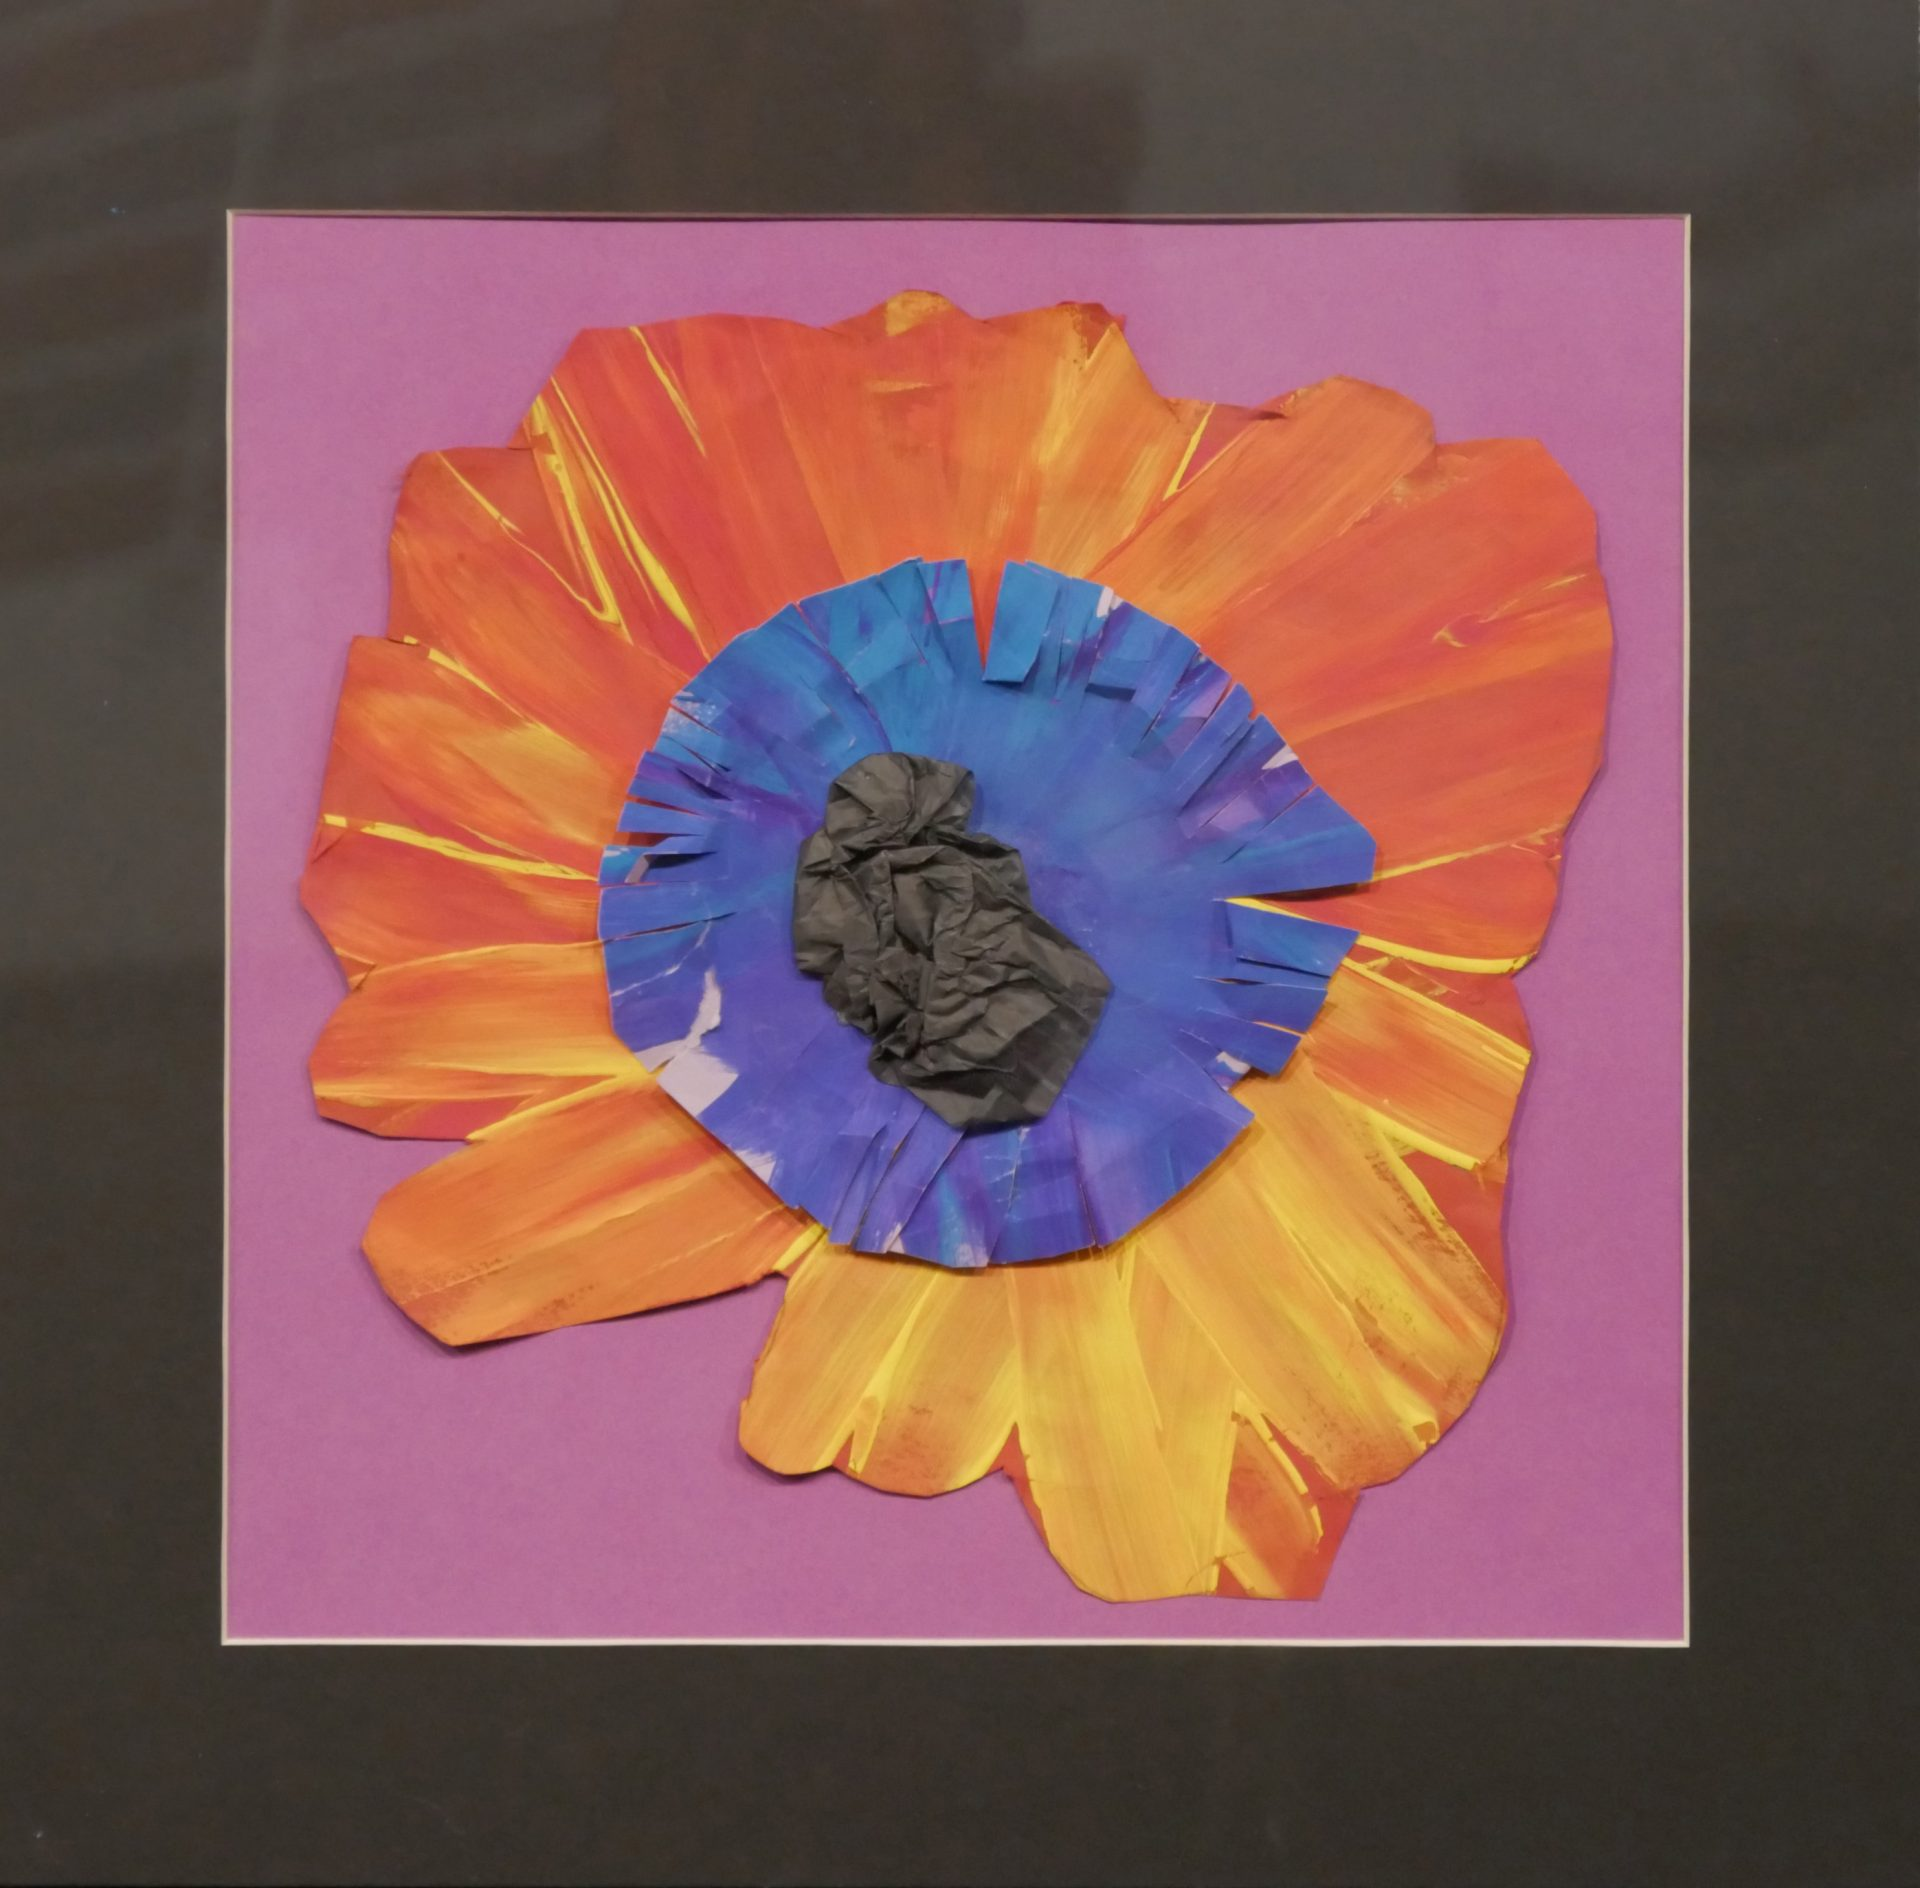 'Poppy' by Cayden Howell (acrylic on paper)